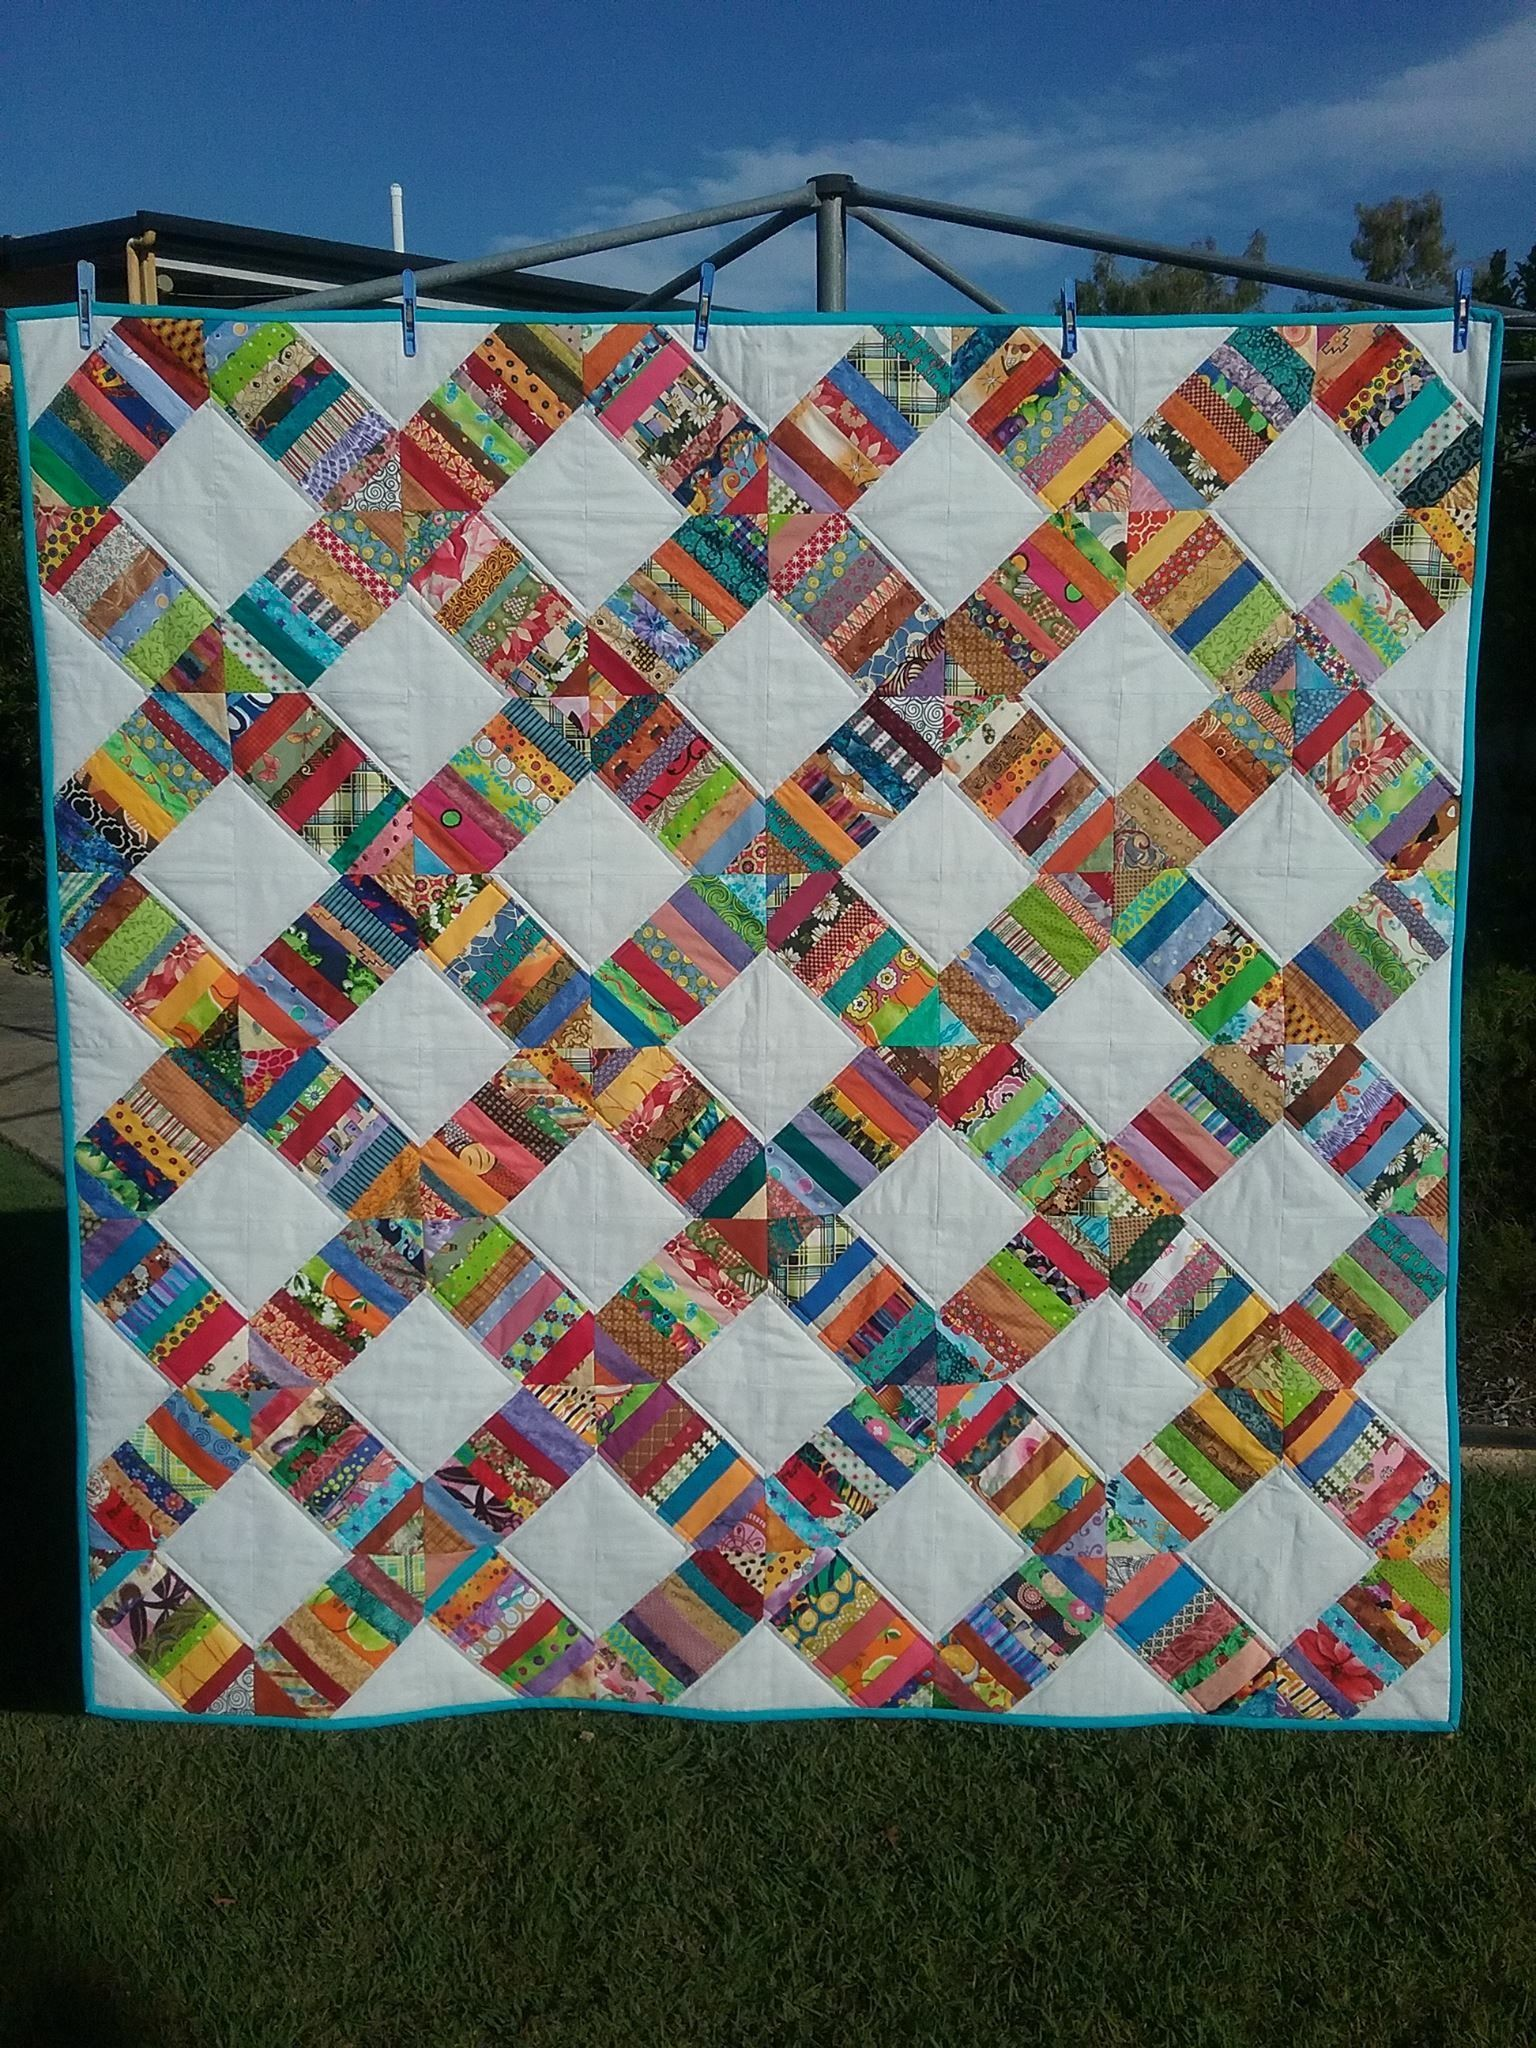 Pin by anne wagner on quilt inspirations pinterest quilts and